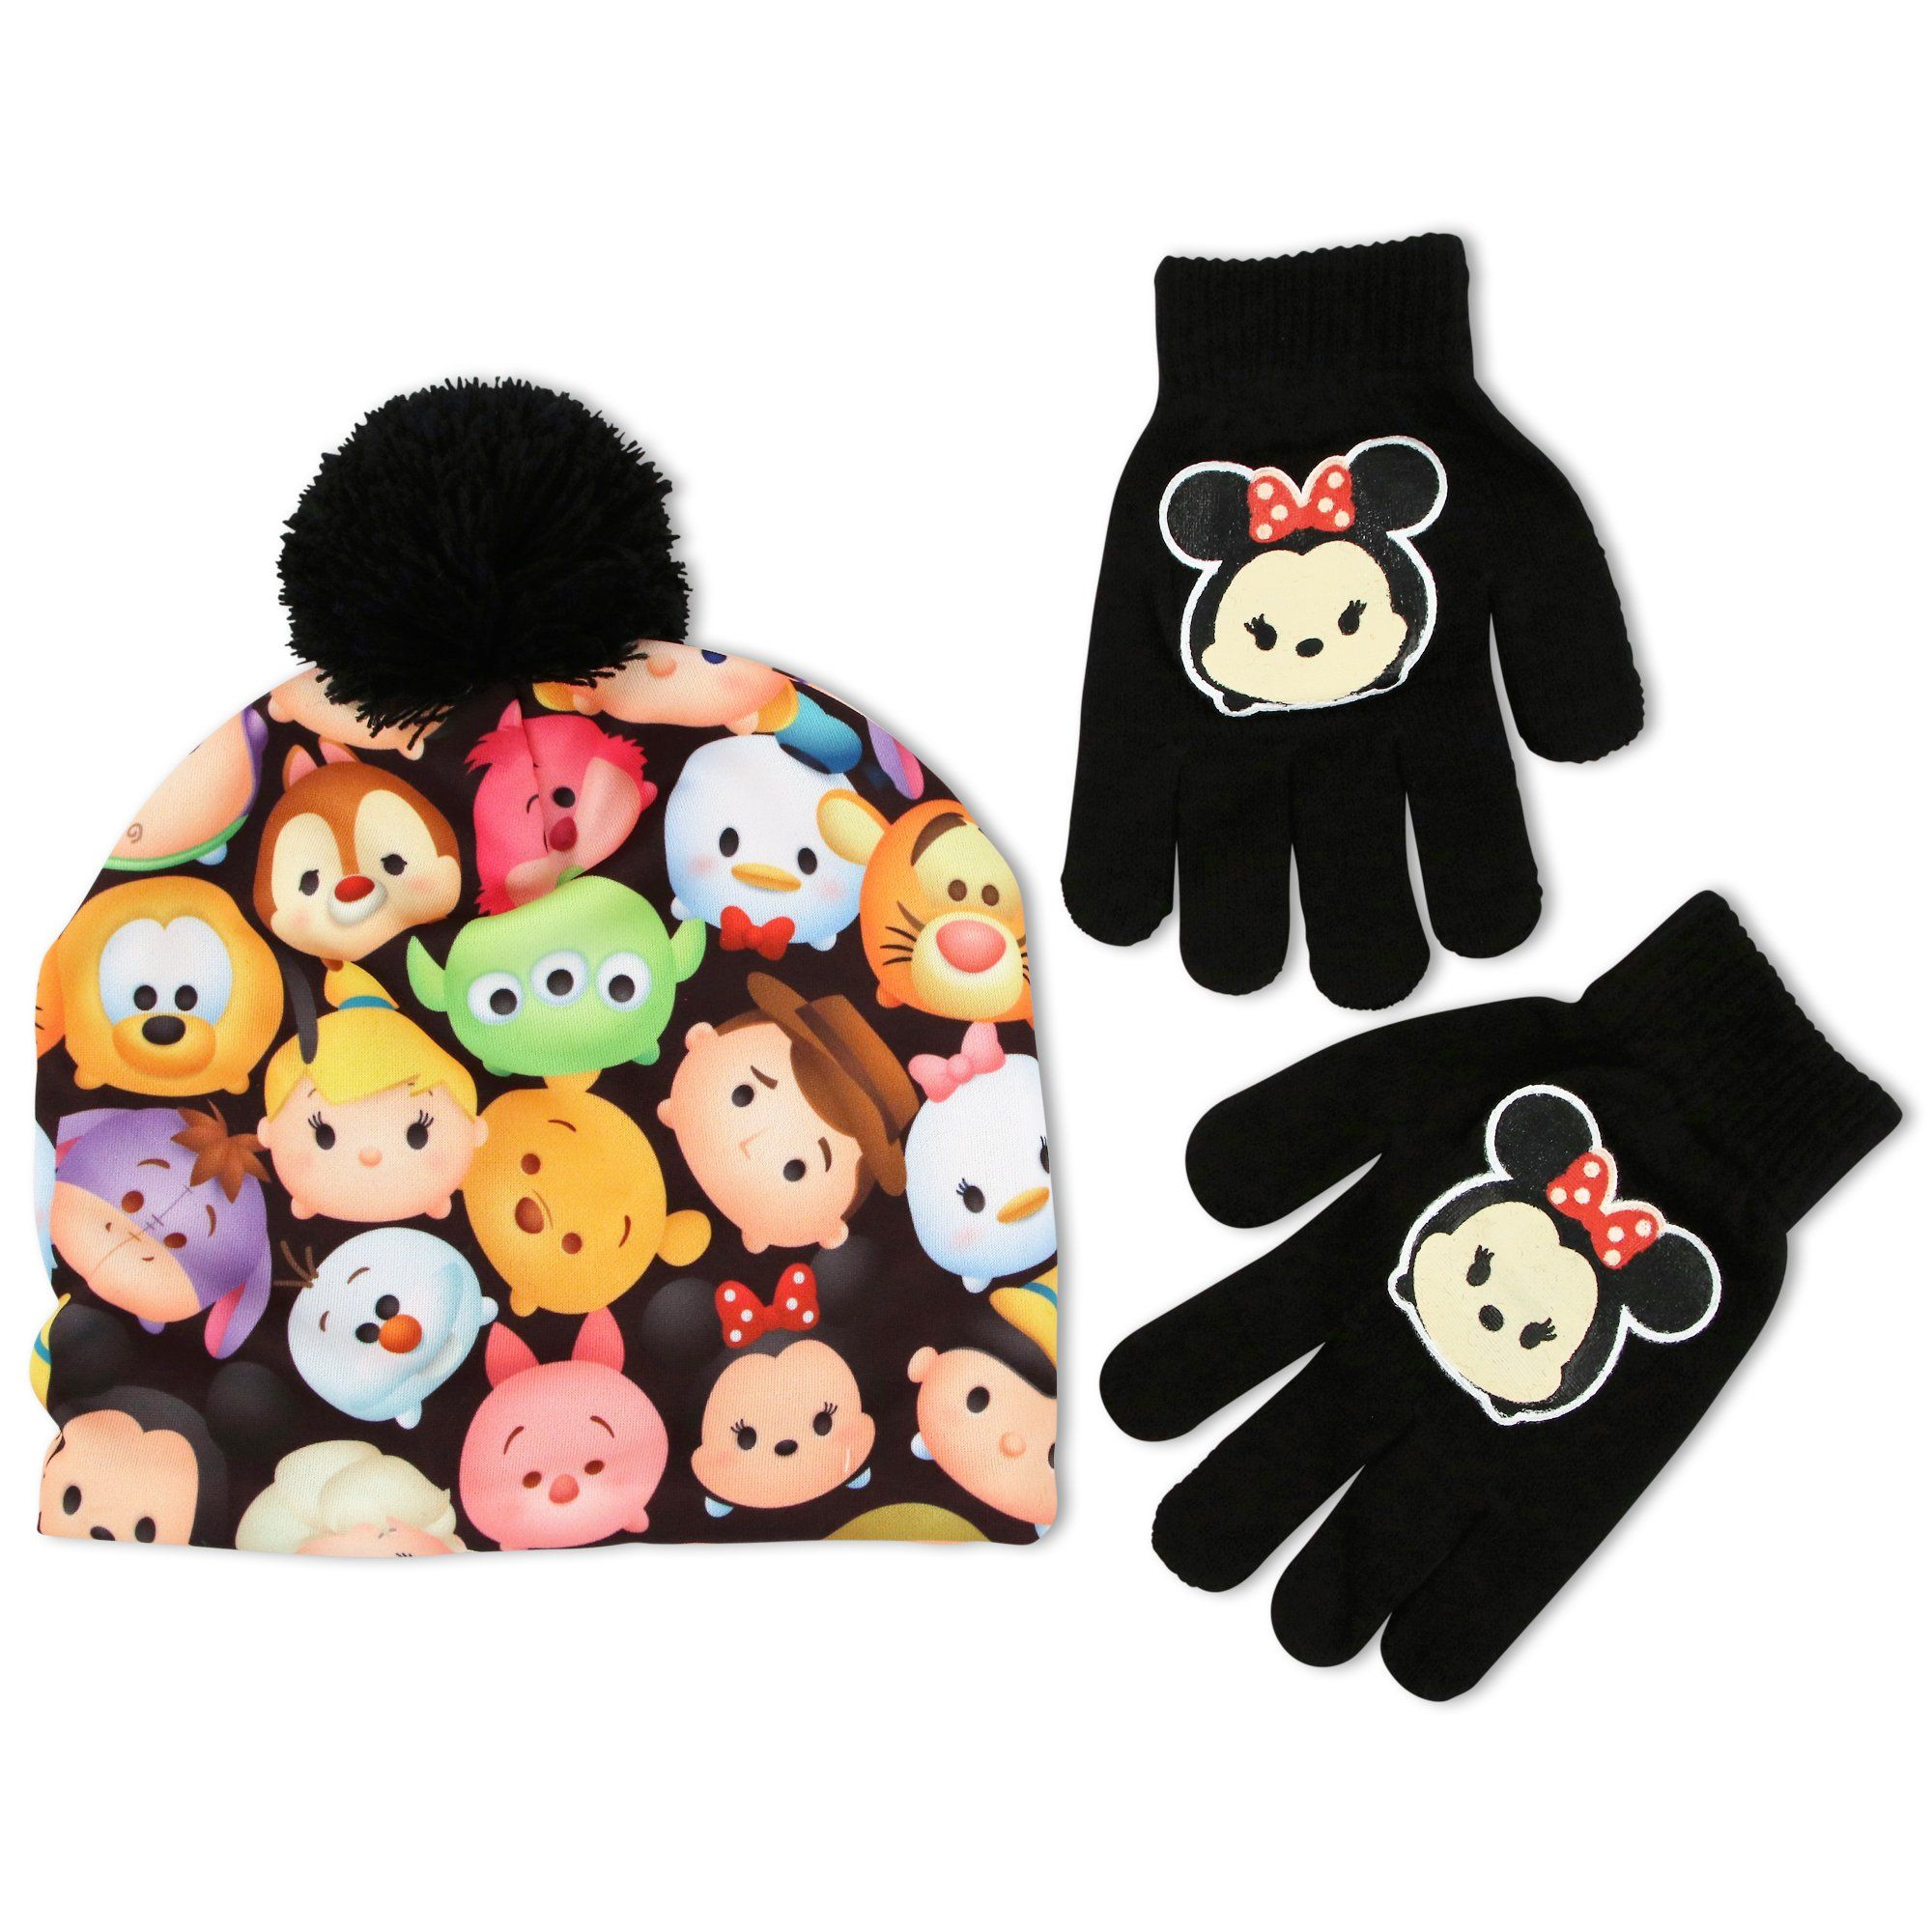 2584740dec5 Disney Little Girls Tsum Tsum Sublimated Neoprene Winter Beanie Hat With  Knit Yarn Pom Pom and Minnie Mouse Acrylic knit Glove Set